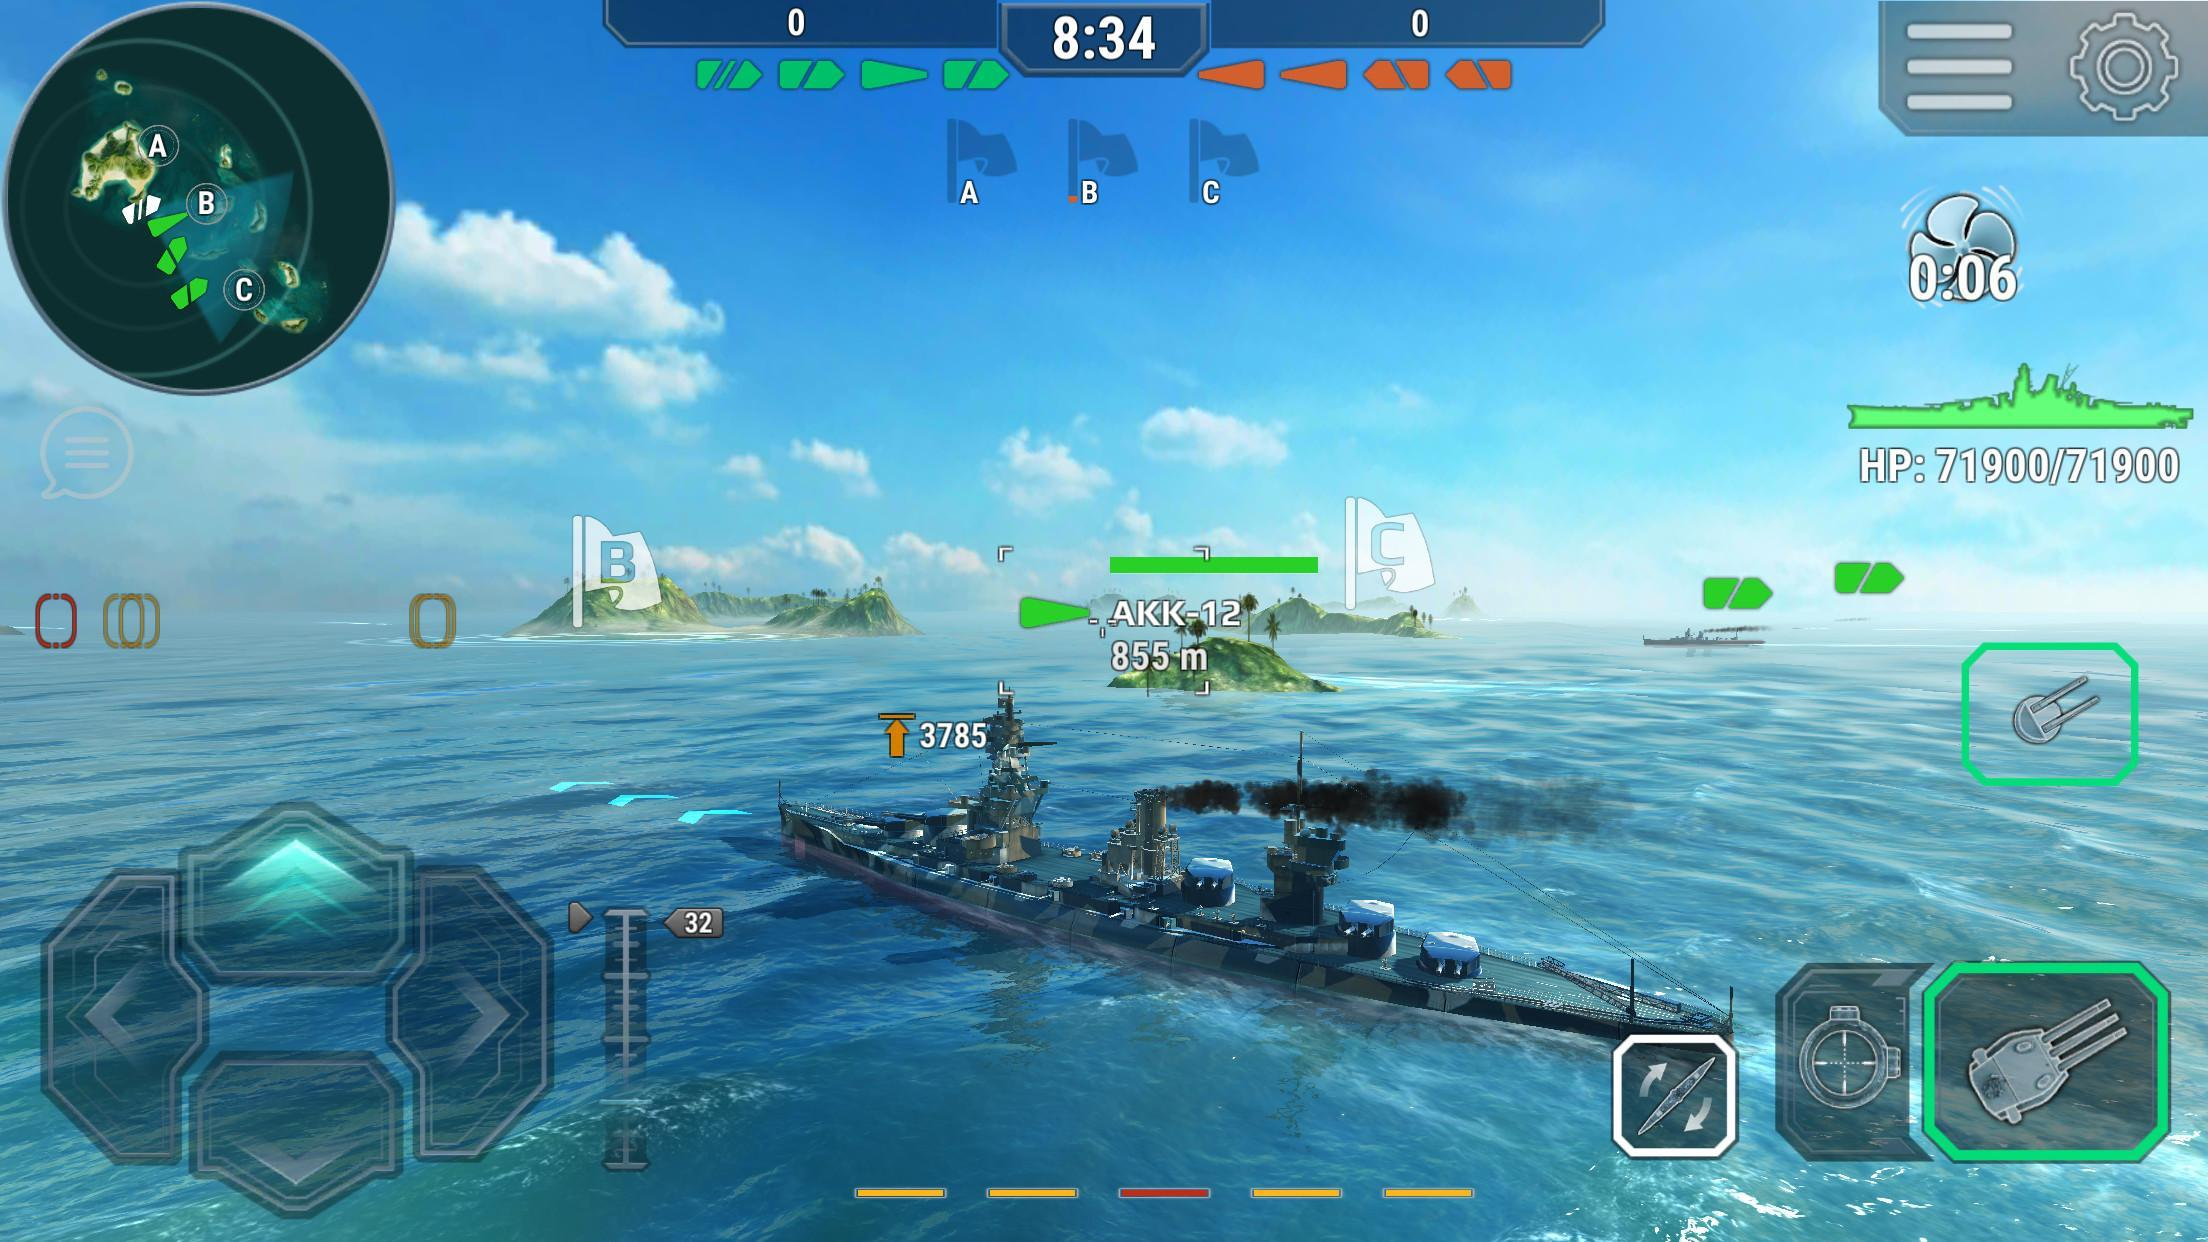 Warships Universe for Android - APK Download